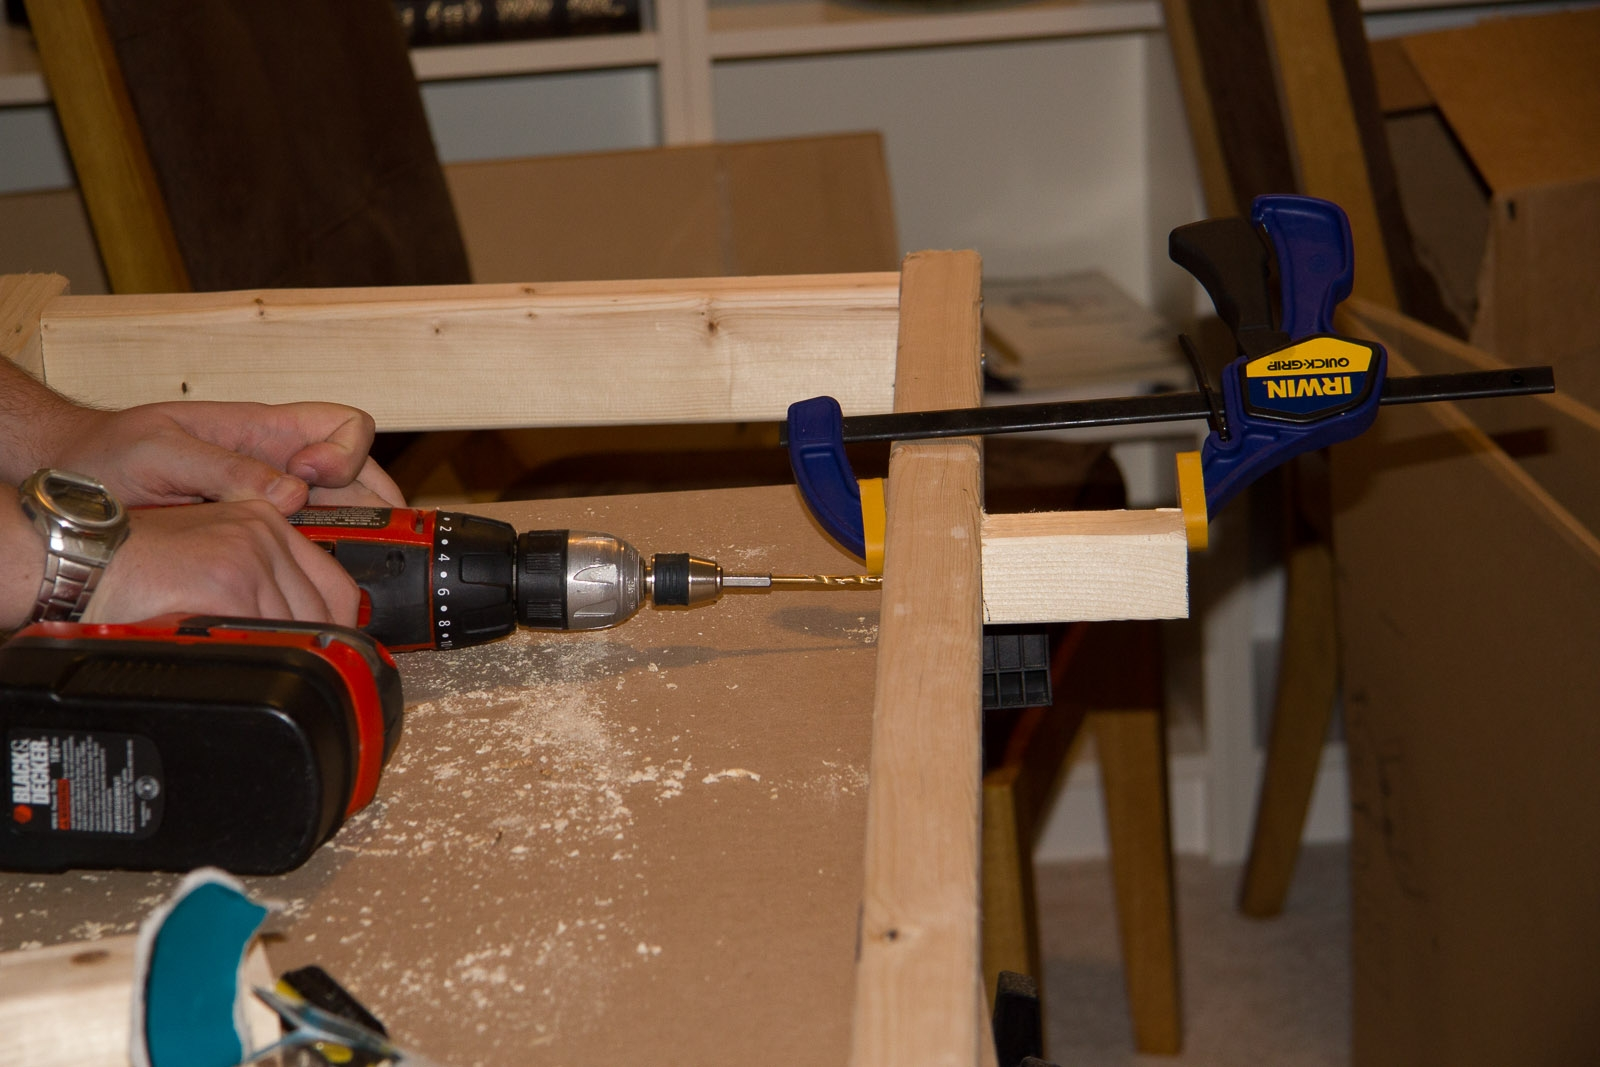 2013_10_19 11_42_02 Building the Banquette